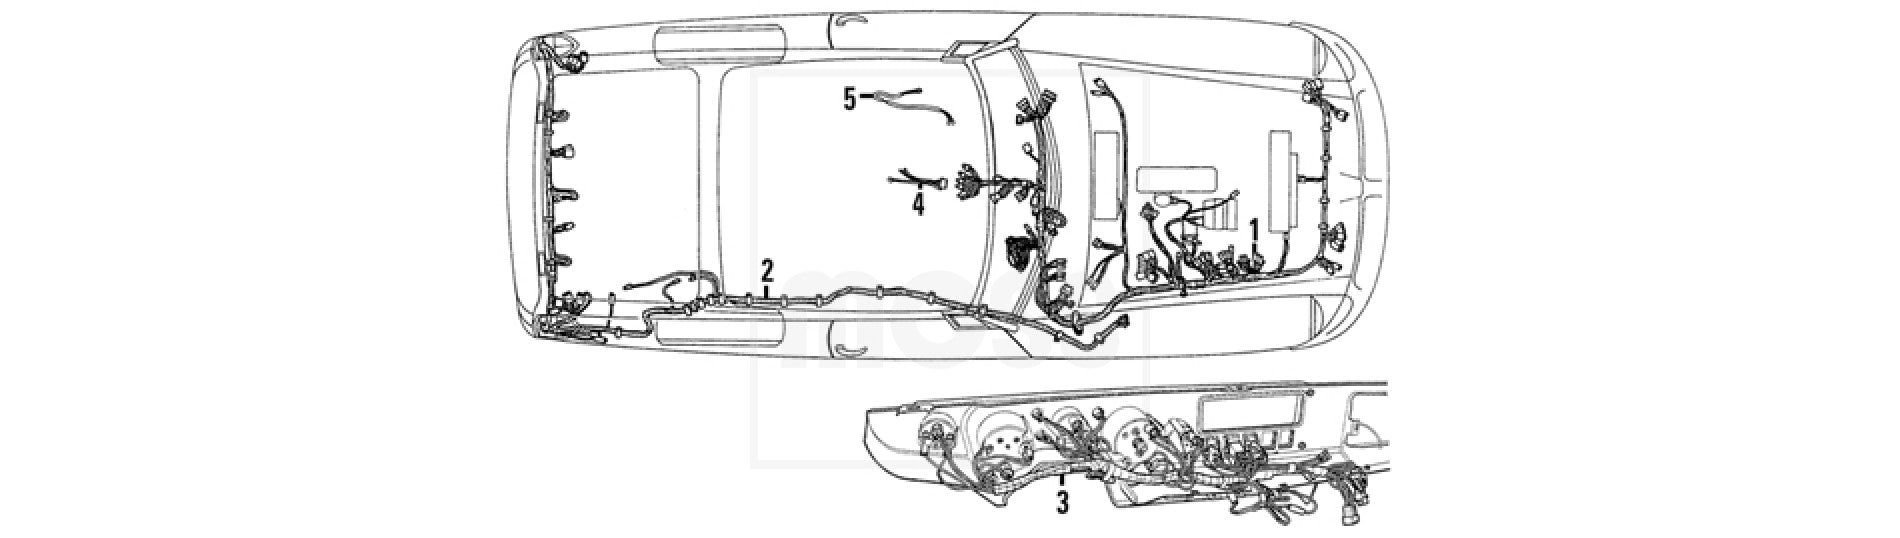 Mgb Wiring Harness - Wiring Liry Diagram Experts on 1977 mgb specifications, 1976 mgb wiring-diagram, 1967 mgb wiring-diagram, 1977 mgb dash, mgb overdrive wiring-diagram, 1966 mgb wiring-diagram, 1969 mgb wiring-diagram,